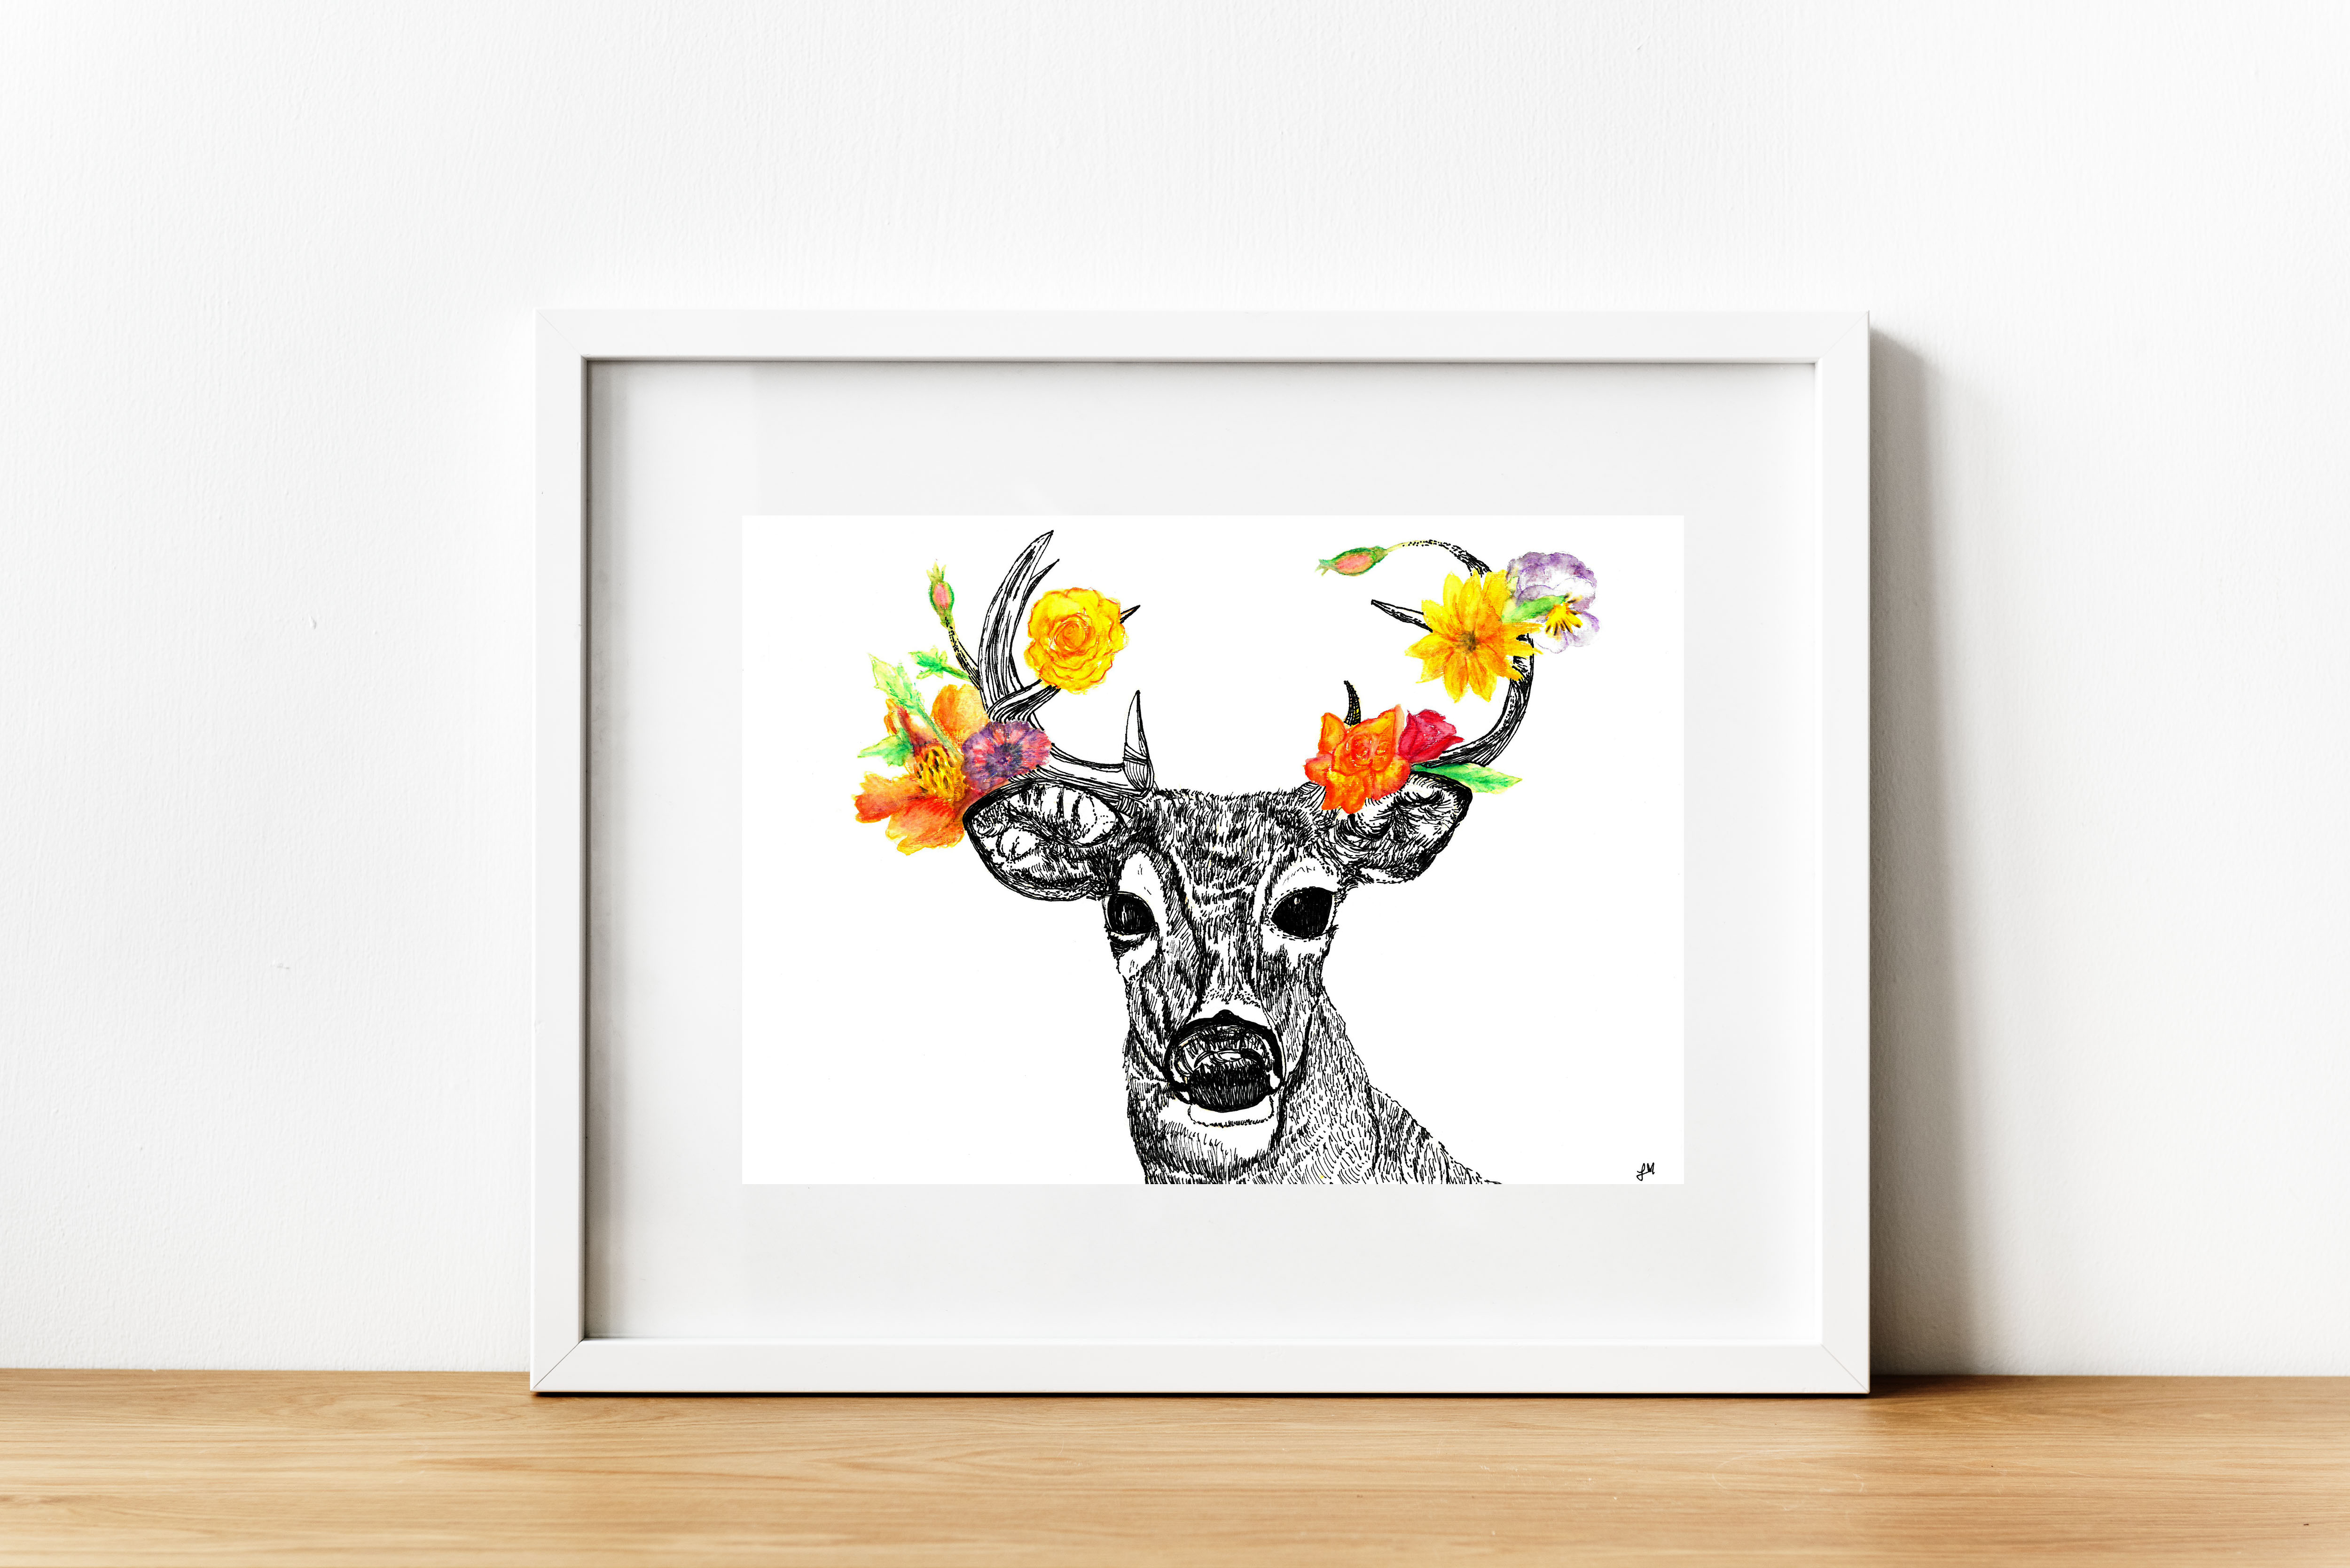 A buck deer drawn in black pen sports antlers with bright yellow, orange and purple flowers.